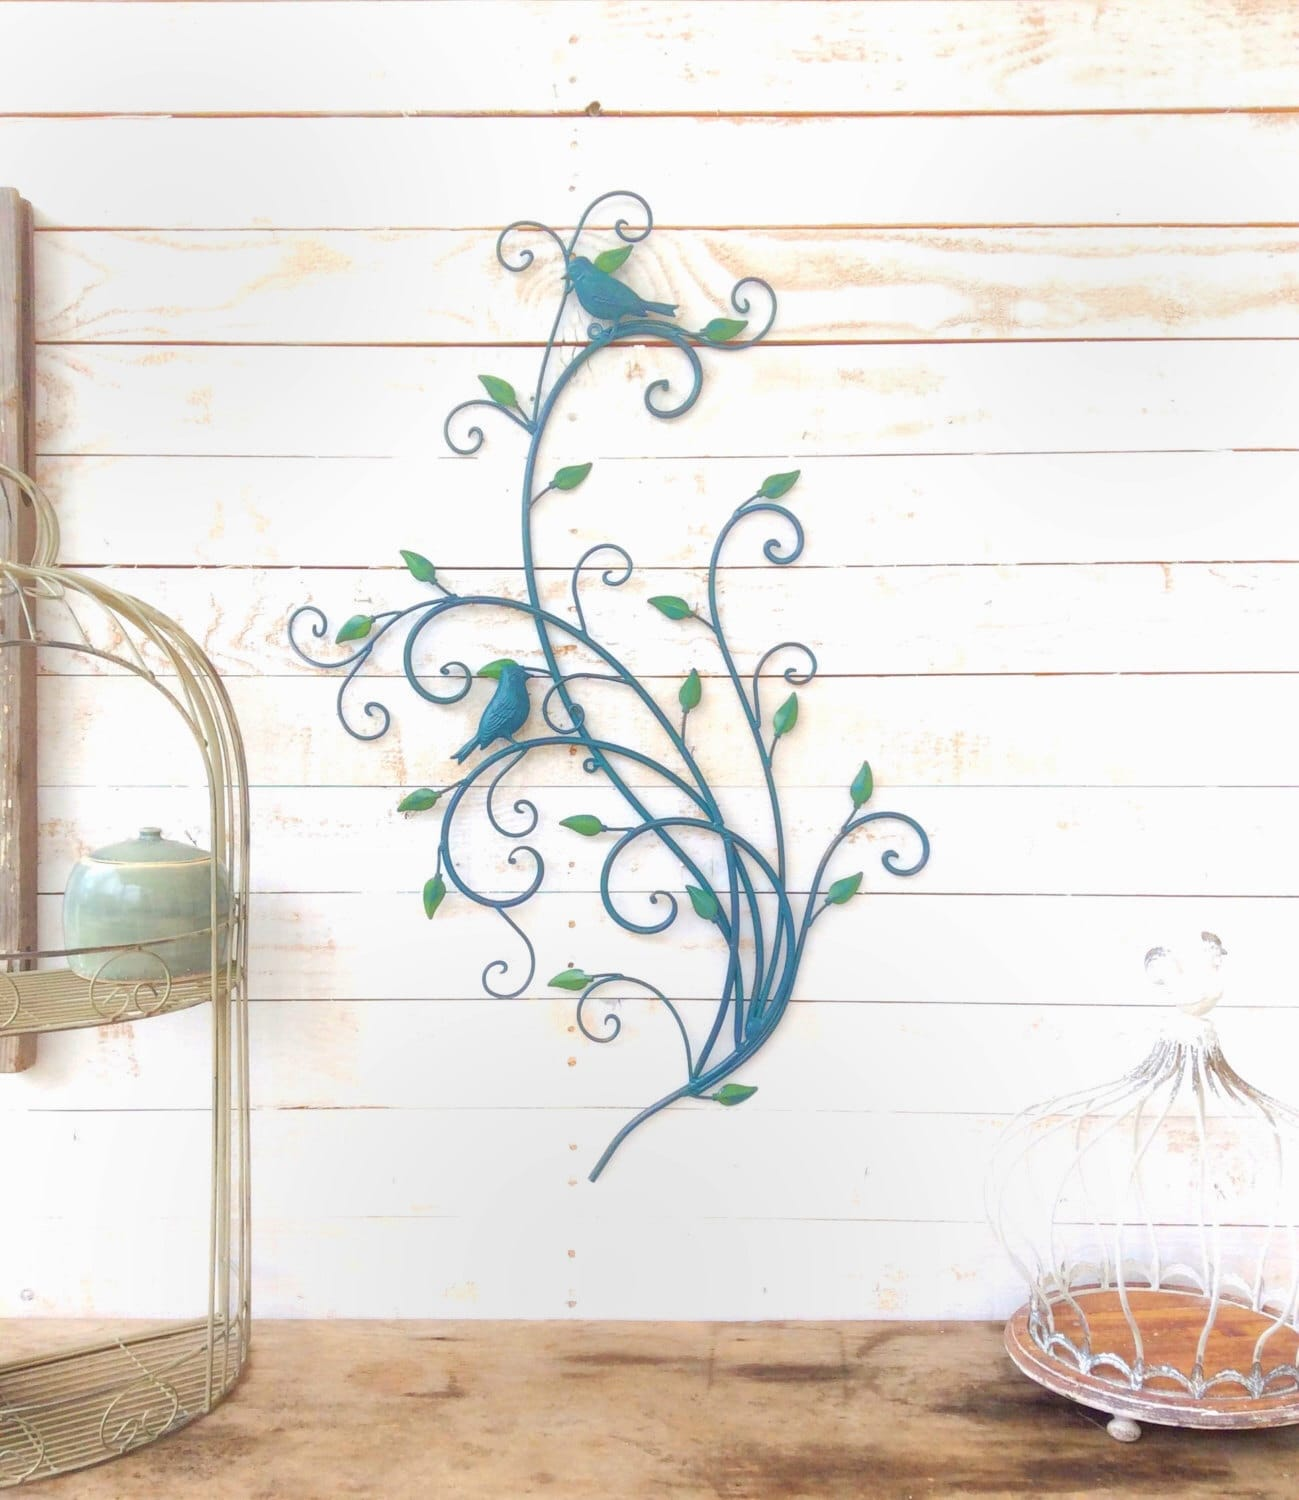 Iron Bird Wall Decor Home Decor For The Home Wall Art Bird